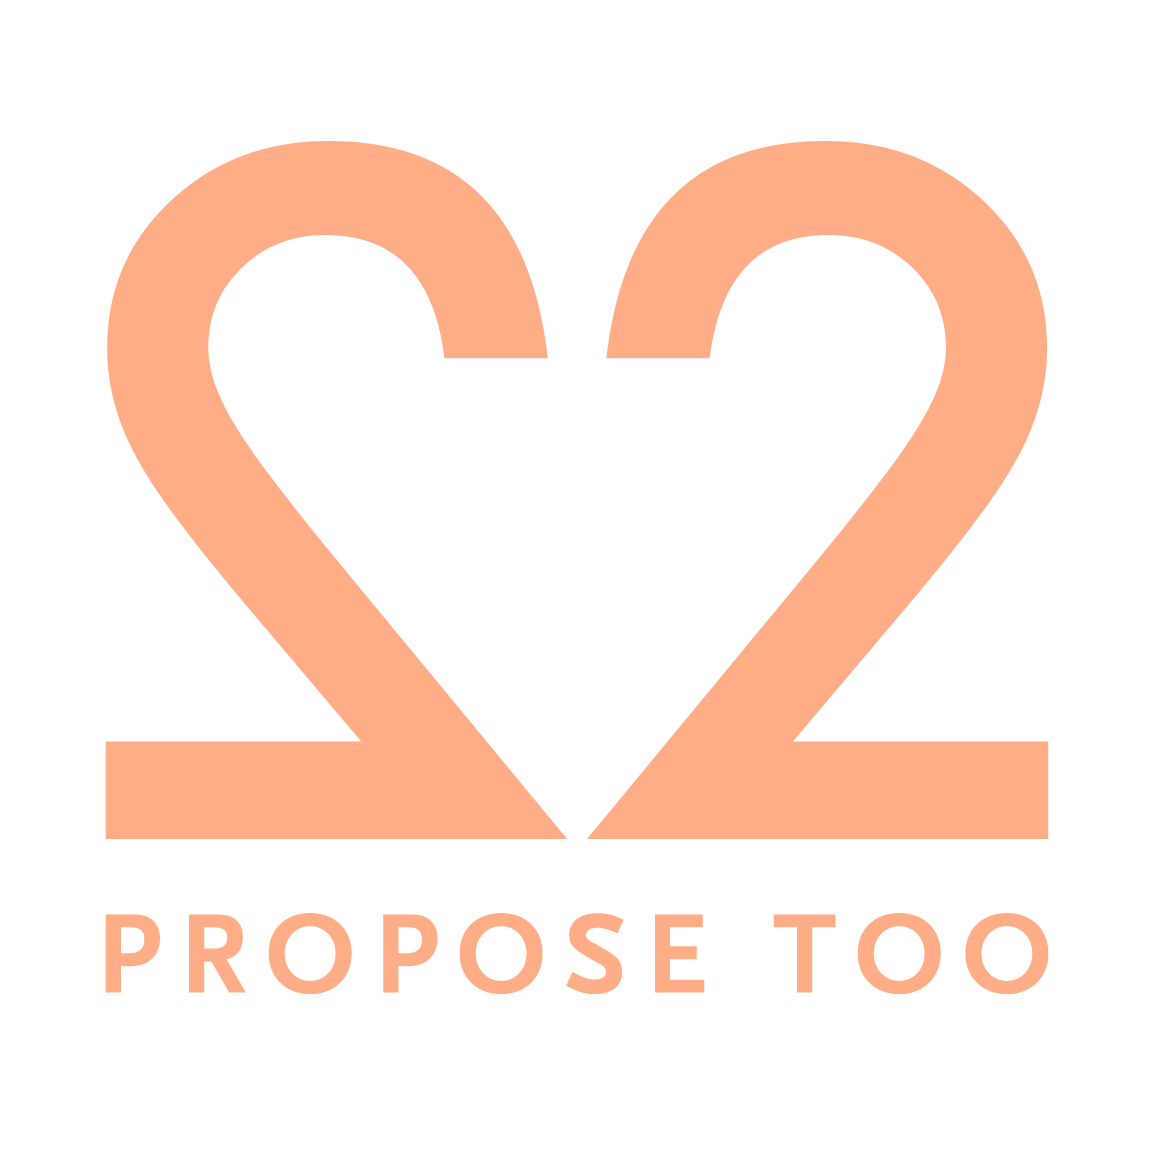 Propose_Too_Logo_Coral_w_Transparent_Bkg-02